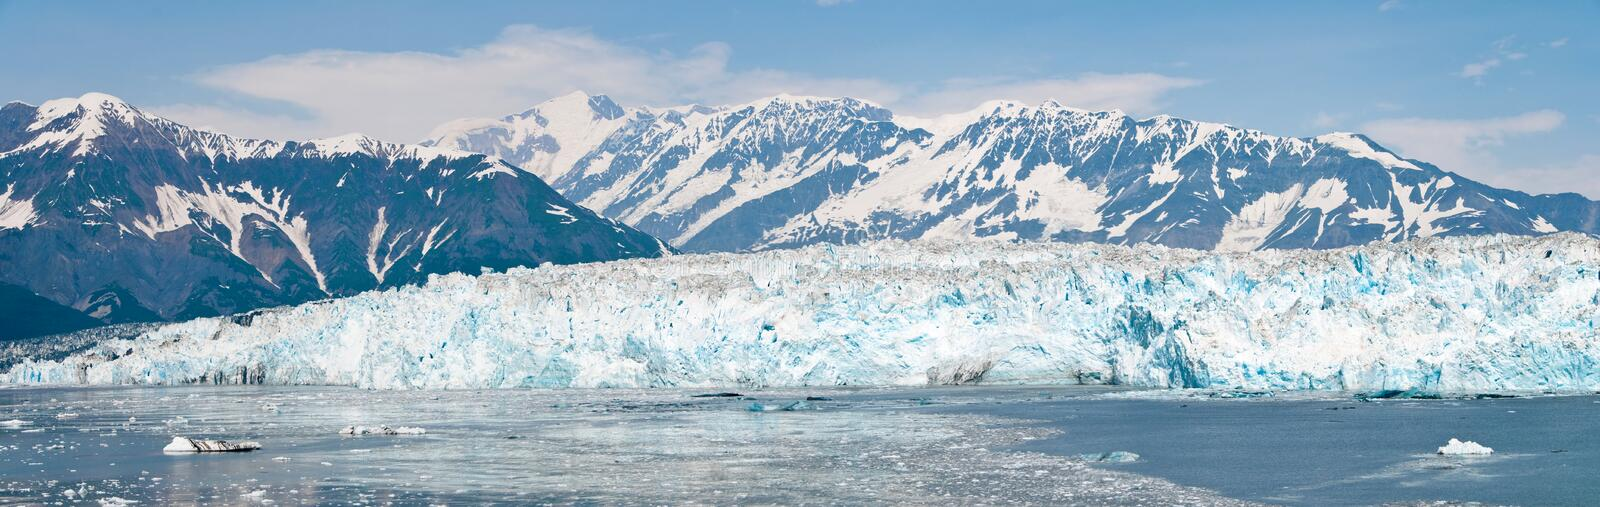 Hubbard Glacier, Alaska. A panoramic shot of the Hubbard Glacier in Alaska royalty free stock image